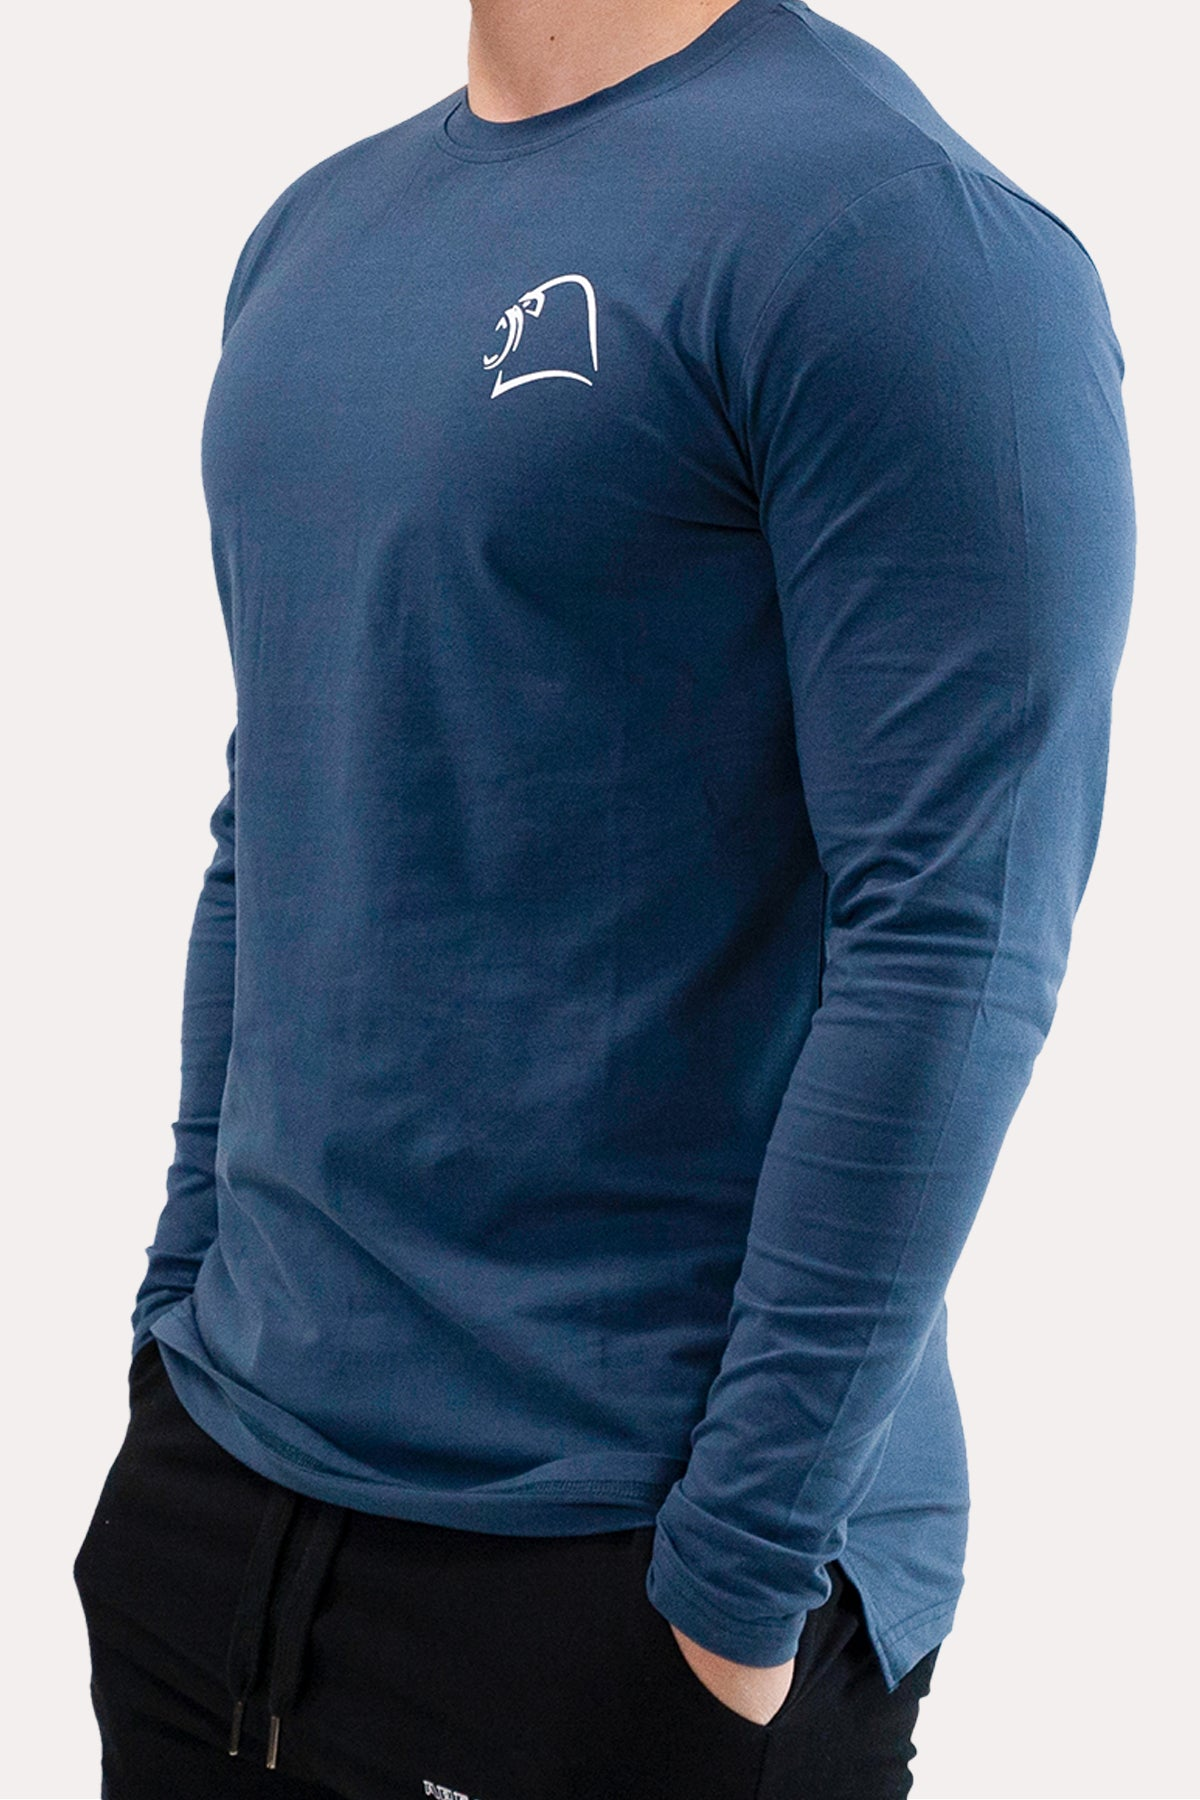 Panel Long-Sleeve - Minimal Royal Blue